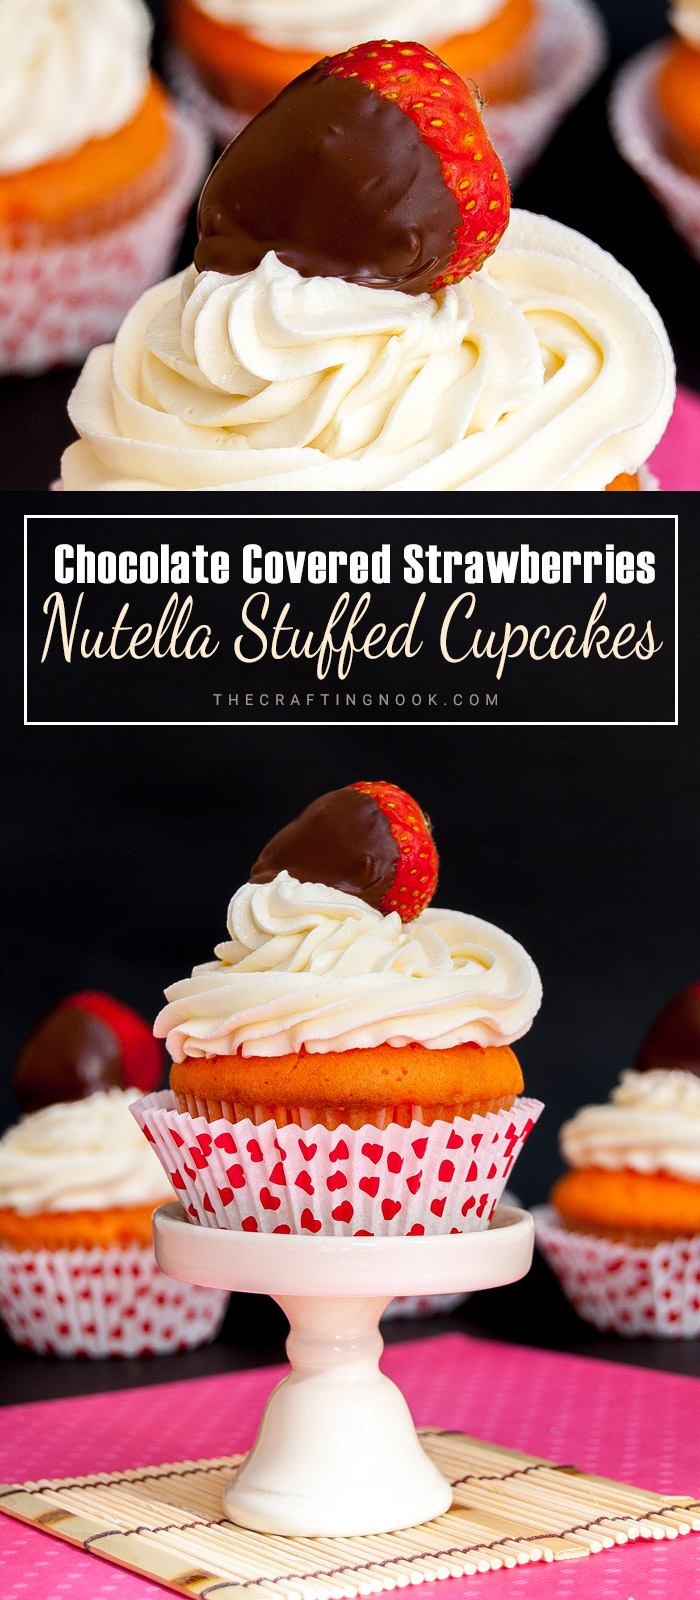 Delicious Chocolate Covered Strawberries topping Nutella Stuffed Cupcakes